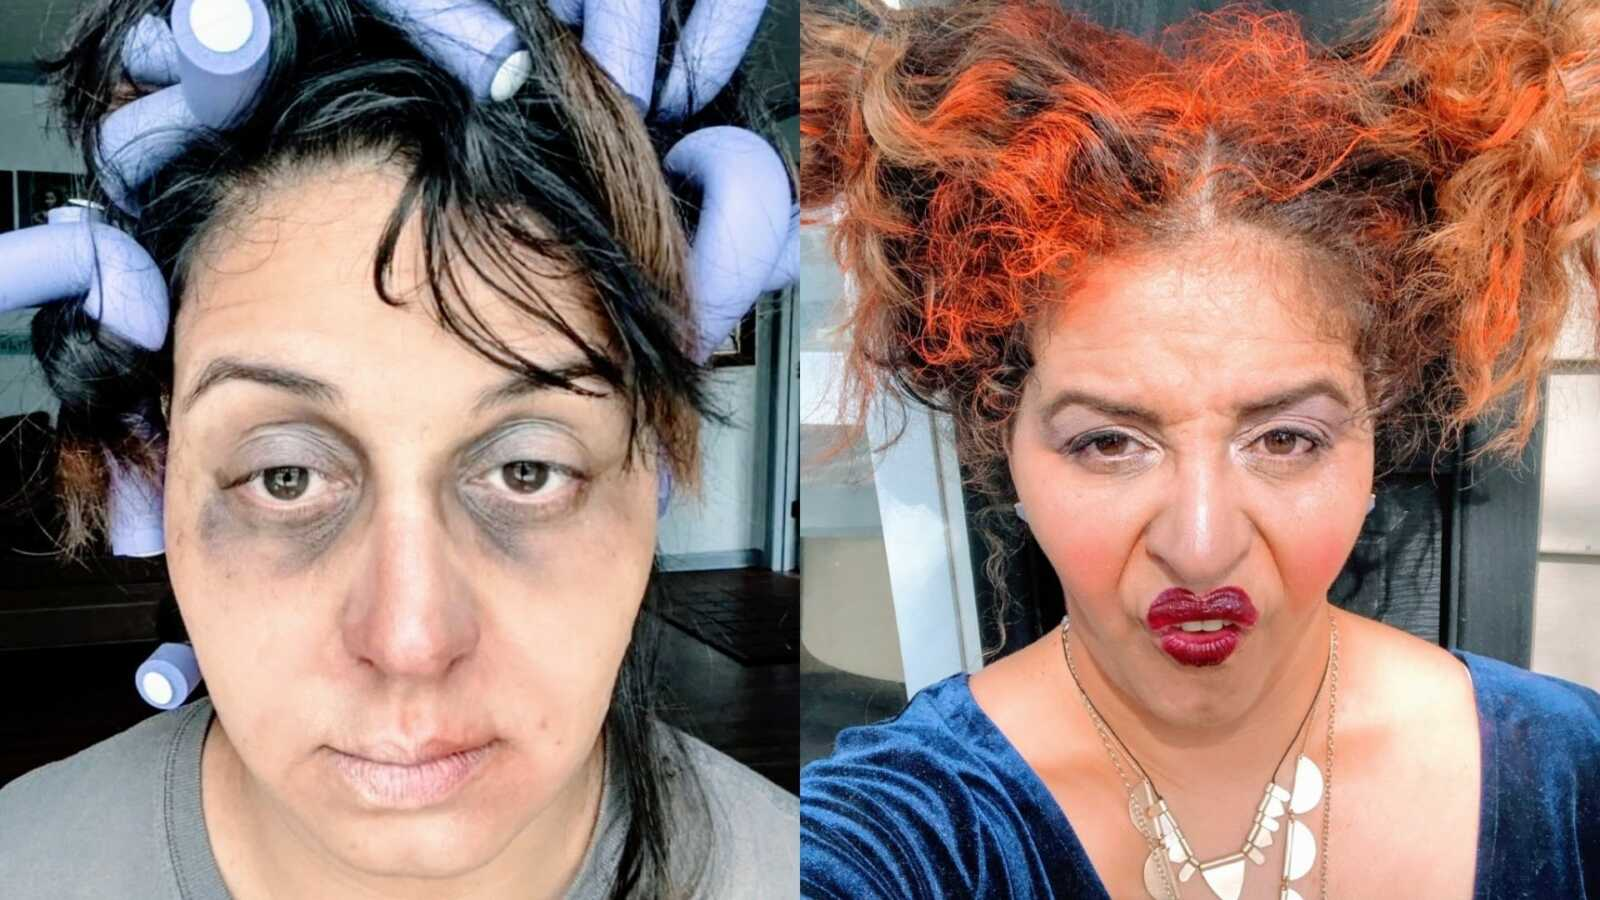 Mom shows off amazing DIY Halloween makeup looks, including mombie and Sanderson sister from Hocus Pocus